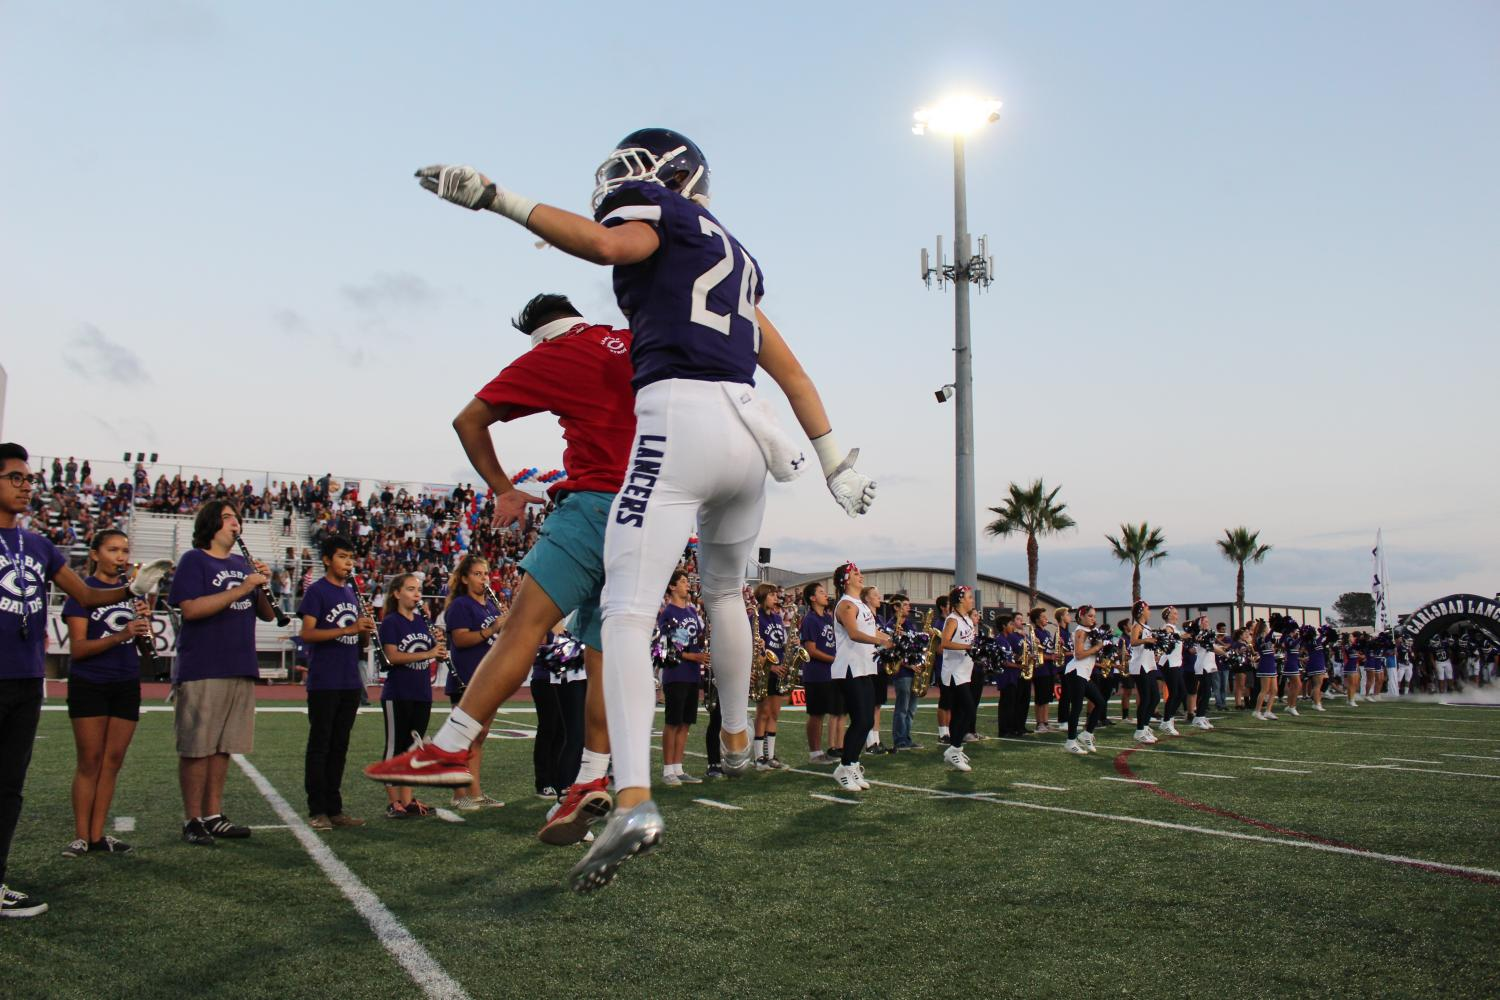 Sophomore, Colbie Whillock, jumps his way onto the field for his game against Mission Hills.